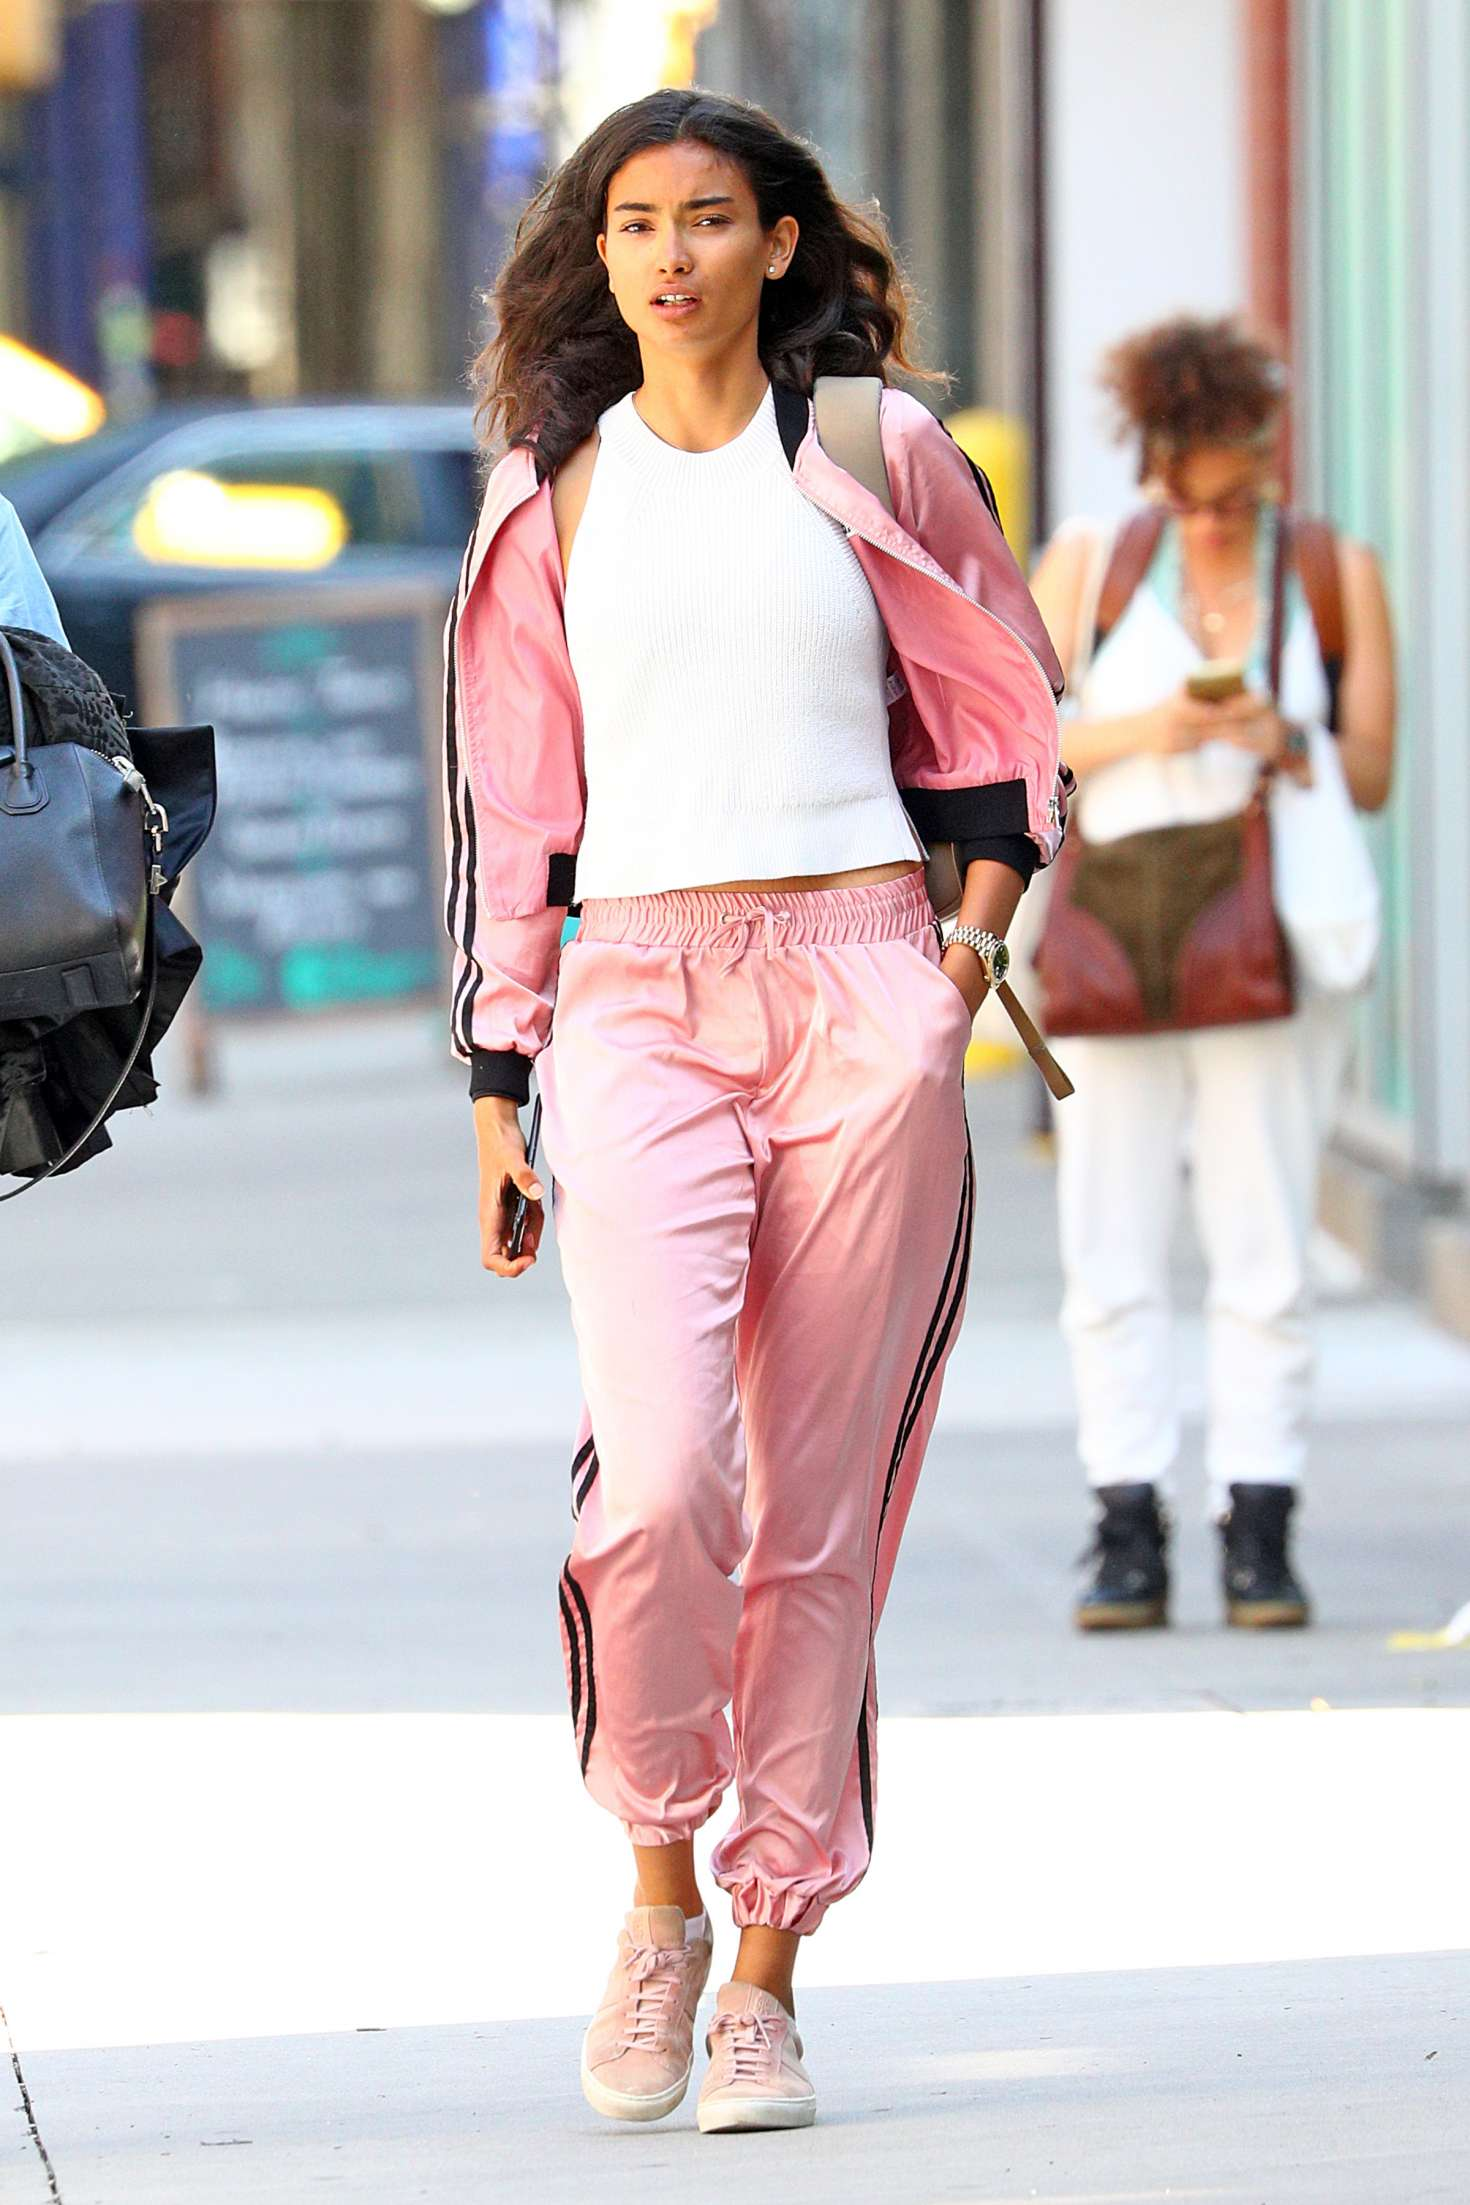 Kelly Gale 2018 : Kelly Gale in Bright Pink Tracksuit -02